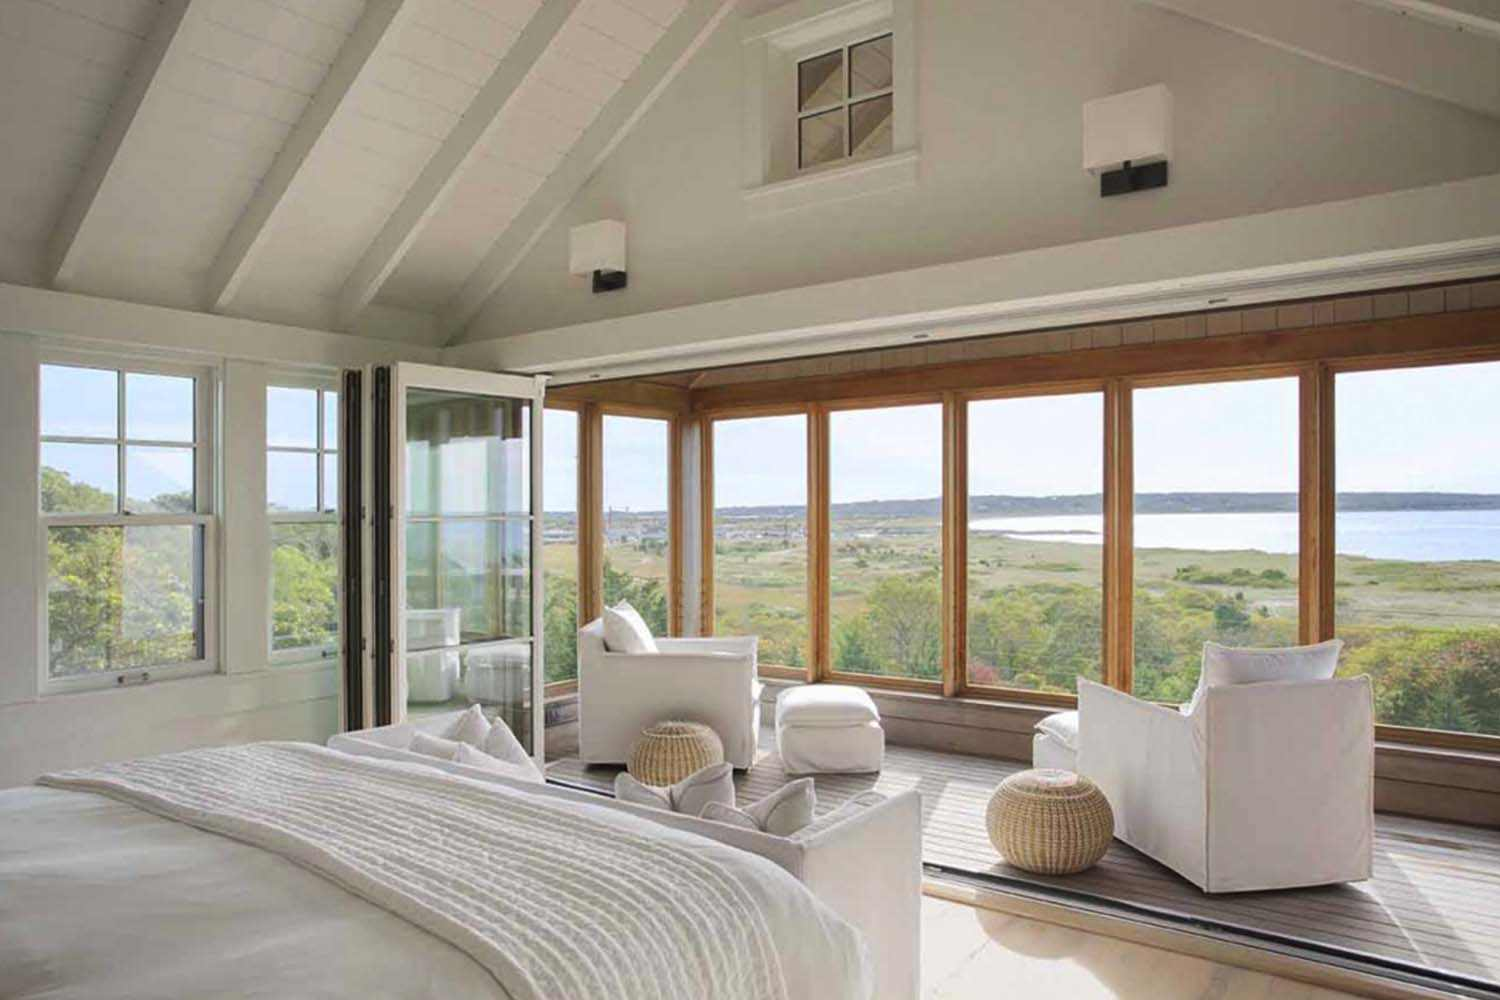 Bedroom with View, Beach Barn House in Massachusetts